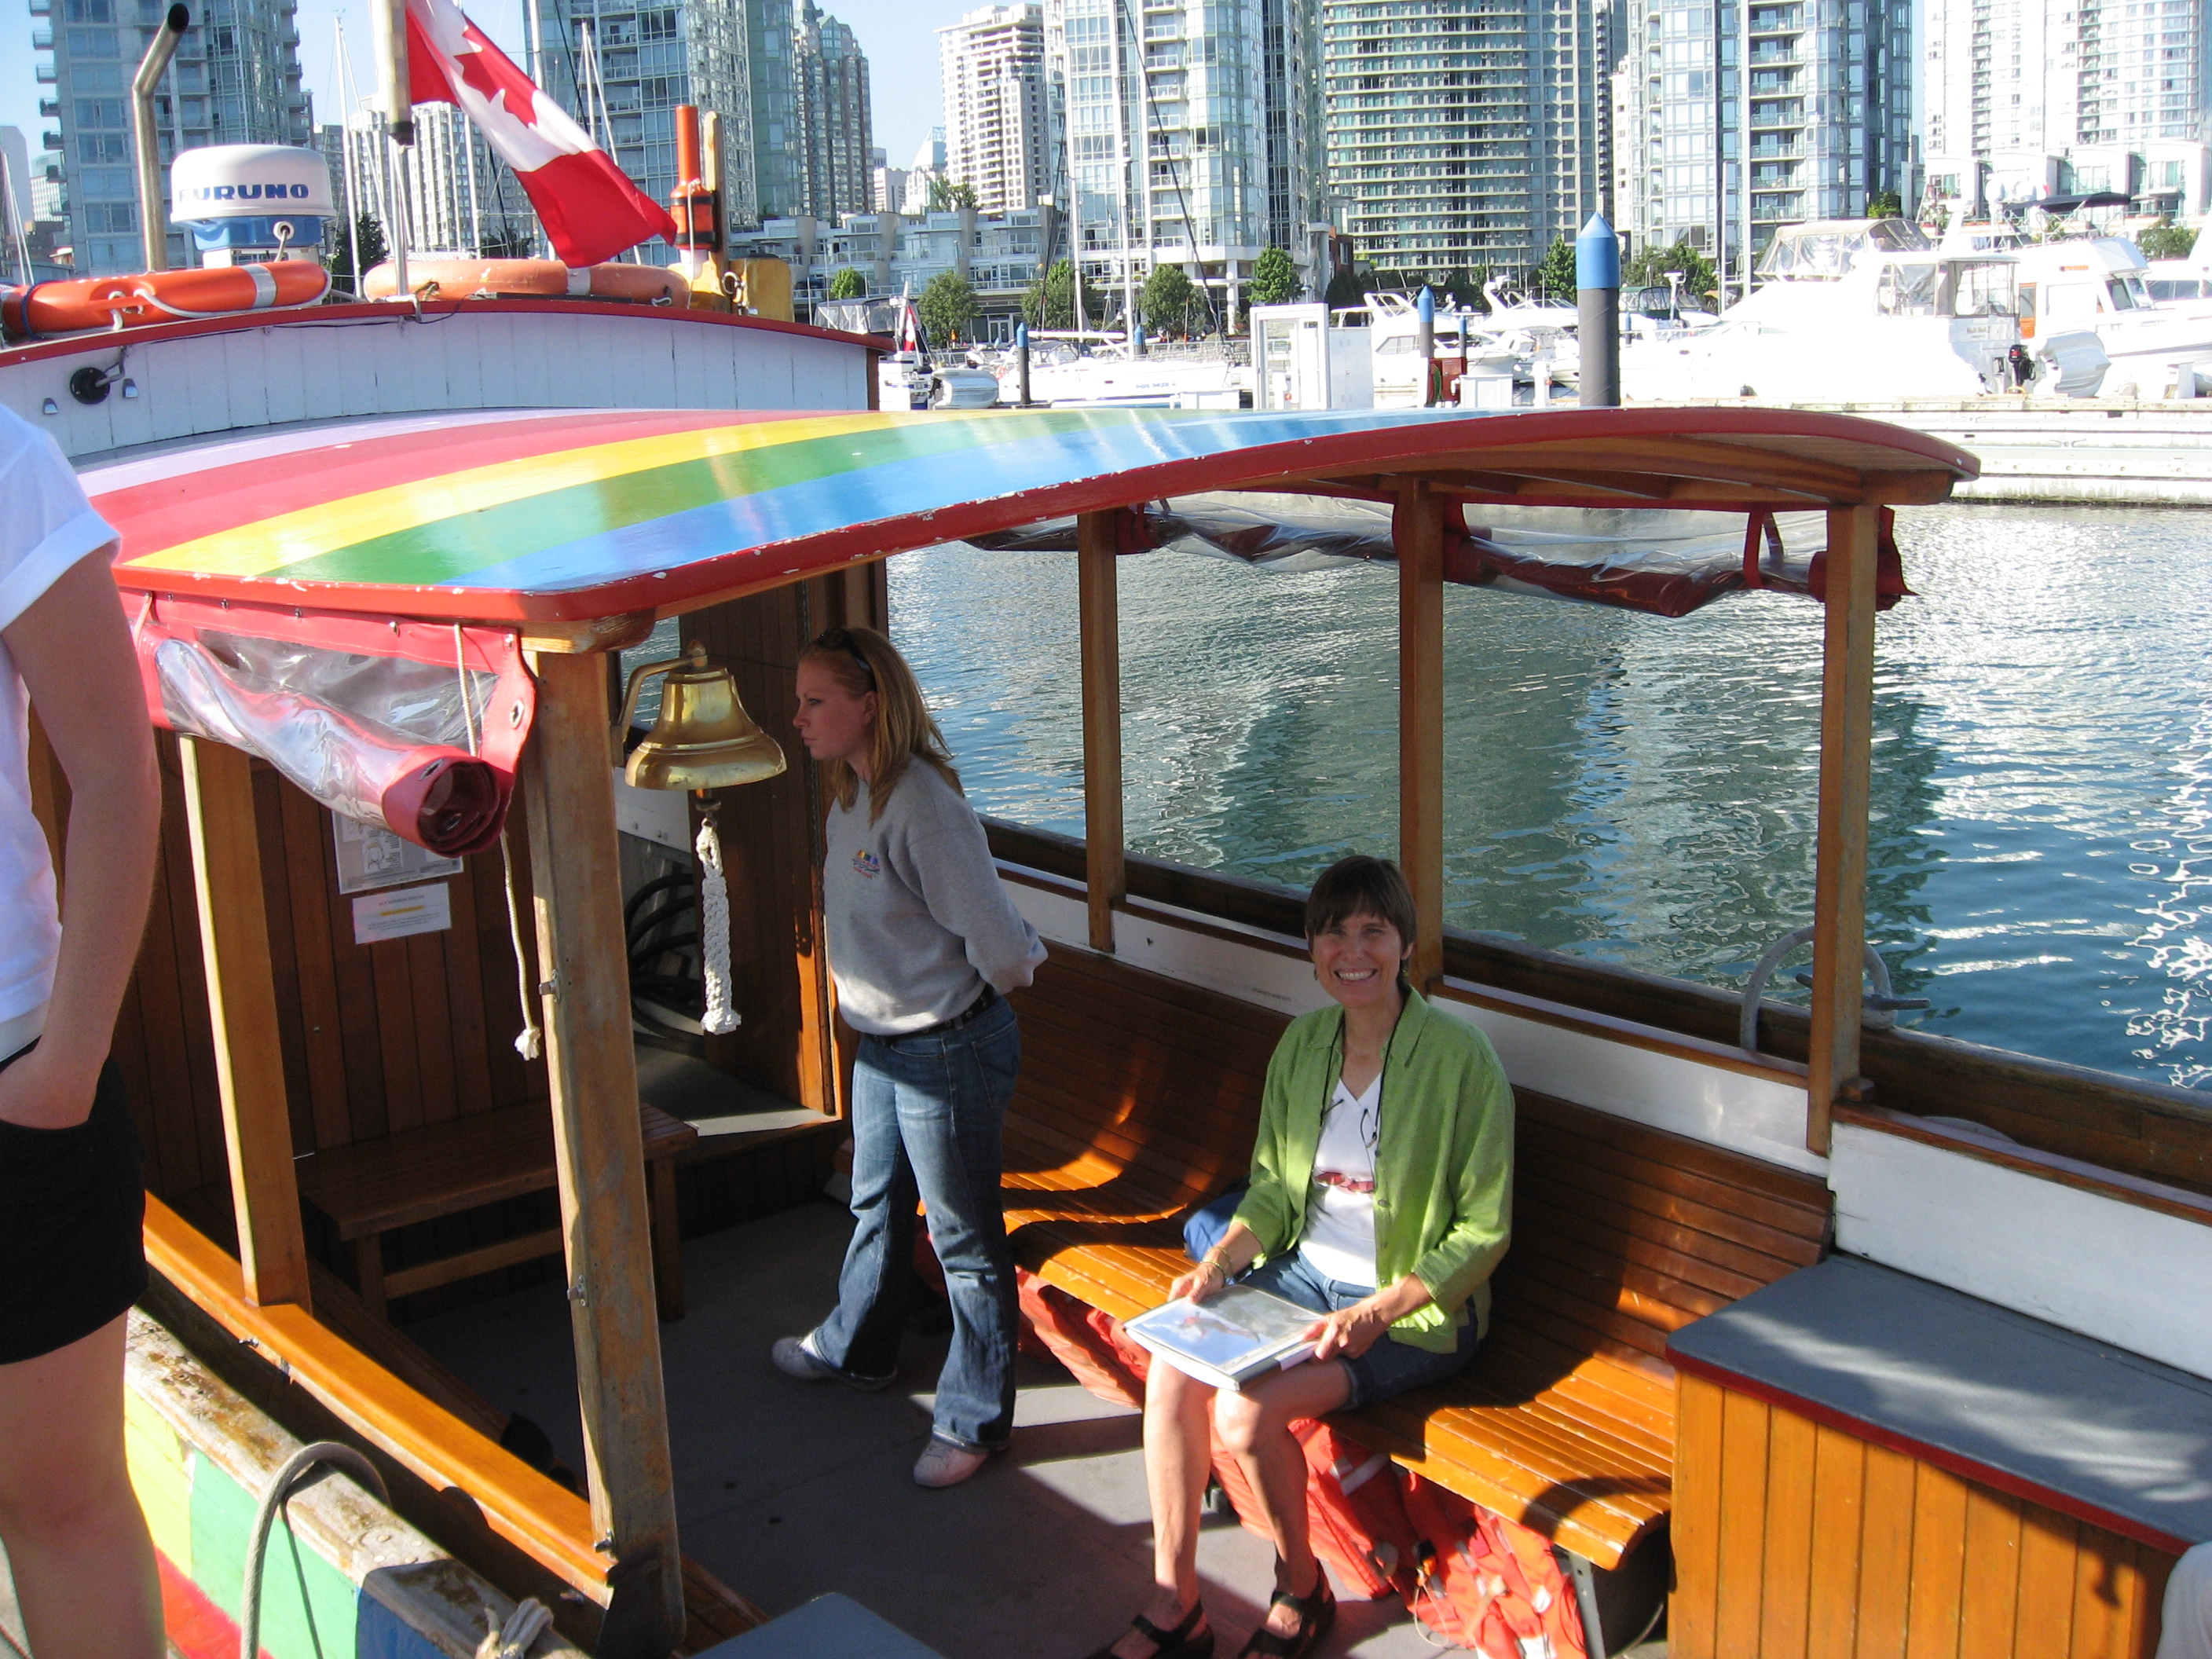 People enjoying their ride on the Aquabus Wendy Cutler/CC, Flickr